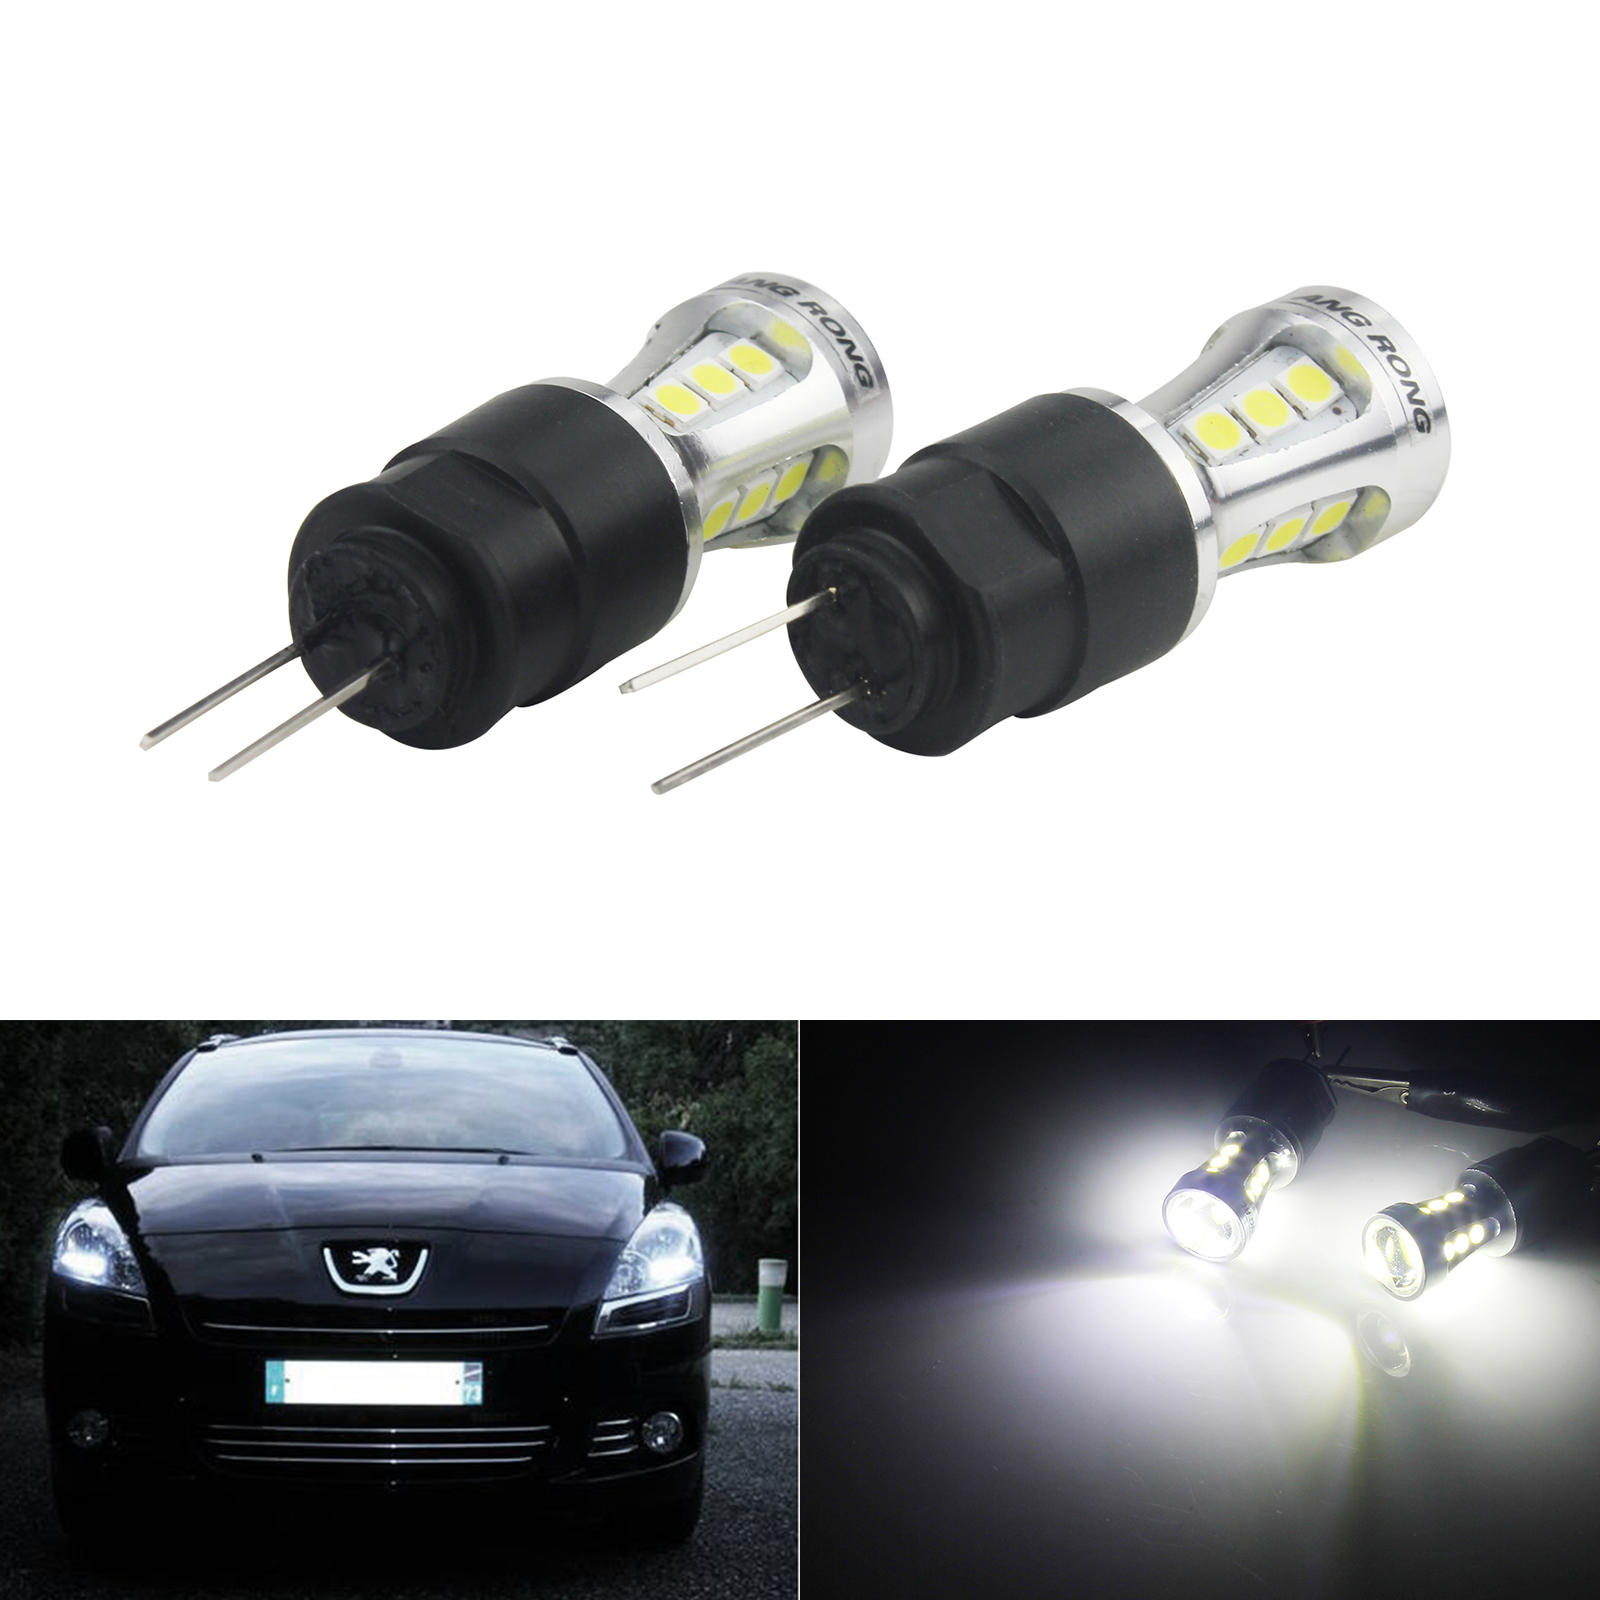 ANGRONG 2x HP24W HPY24W G4 18 SMD <font><b>LED</b></font> Sidelight Daytime Running <font><b>Light</b></font> Bulbs For <font><b>Peugeot</b></font> <font><b>3008</b></font> 5008 Citron C5 White 6000K image